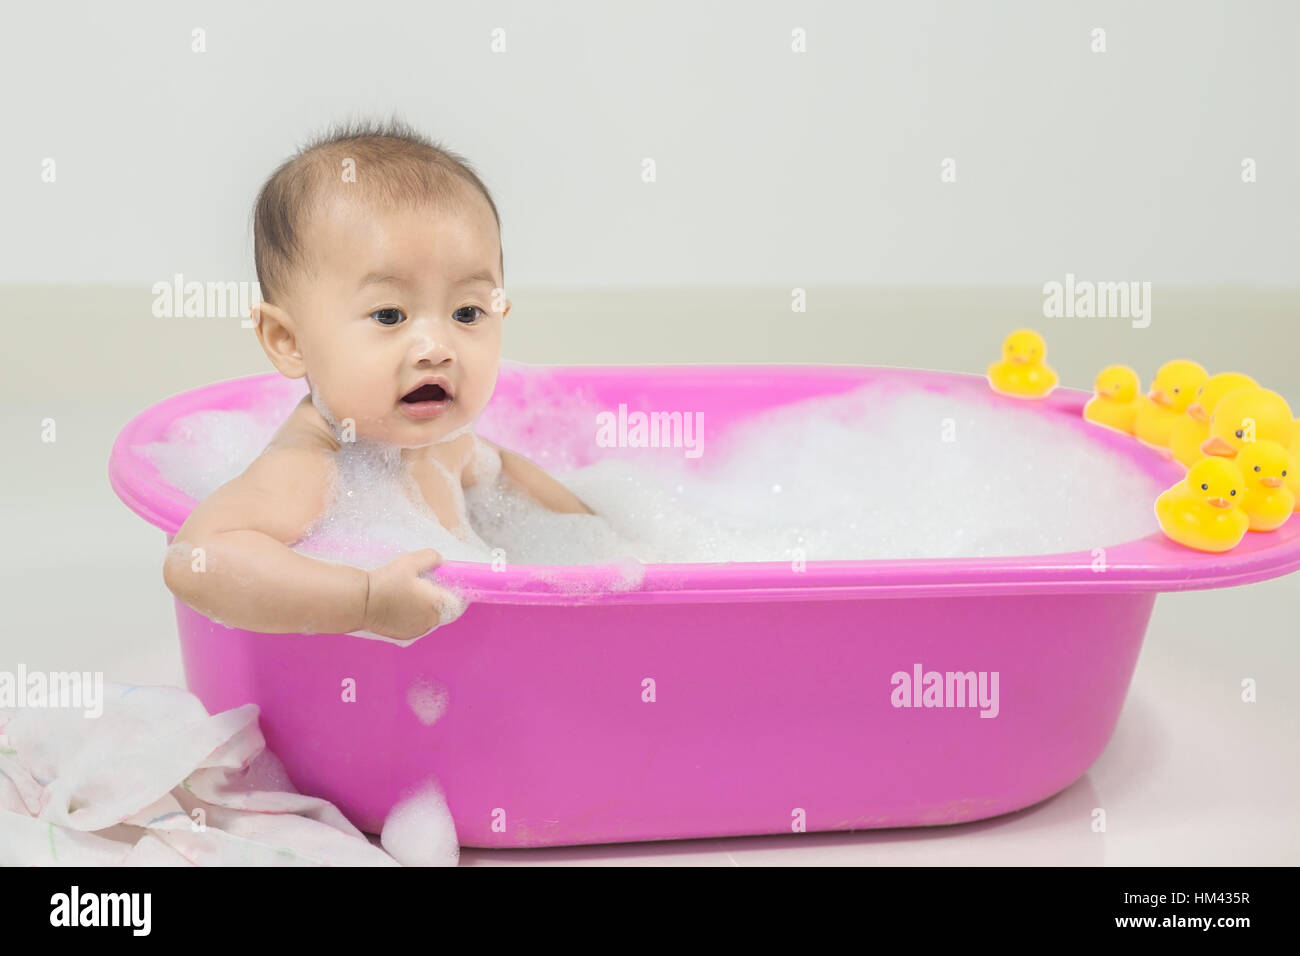 little girl taking bath bubbles stockfotos little girl taking bath bubbles bilder alamy. Black Bedroom Furniture Sets. Home Design Ideas